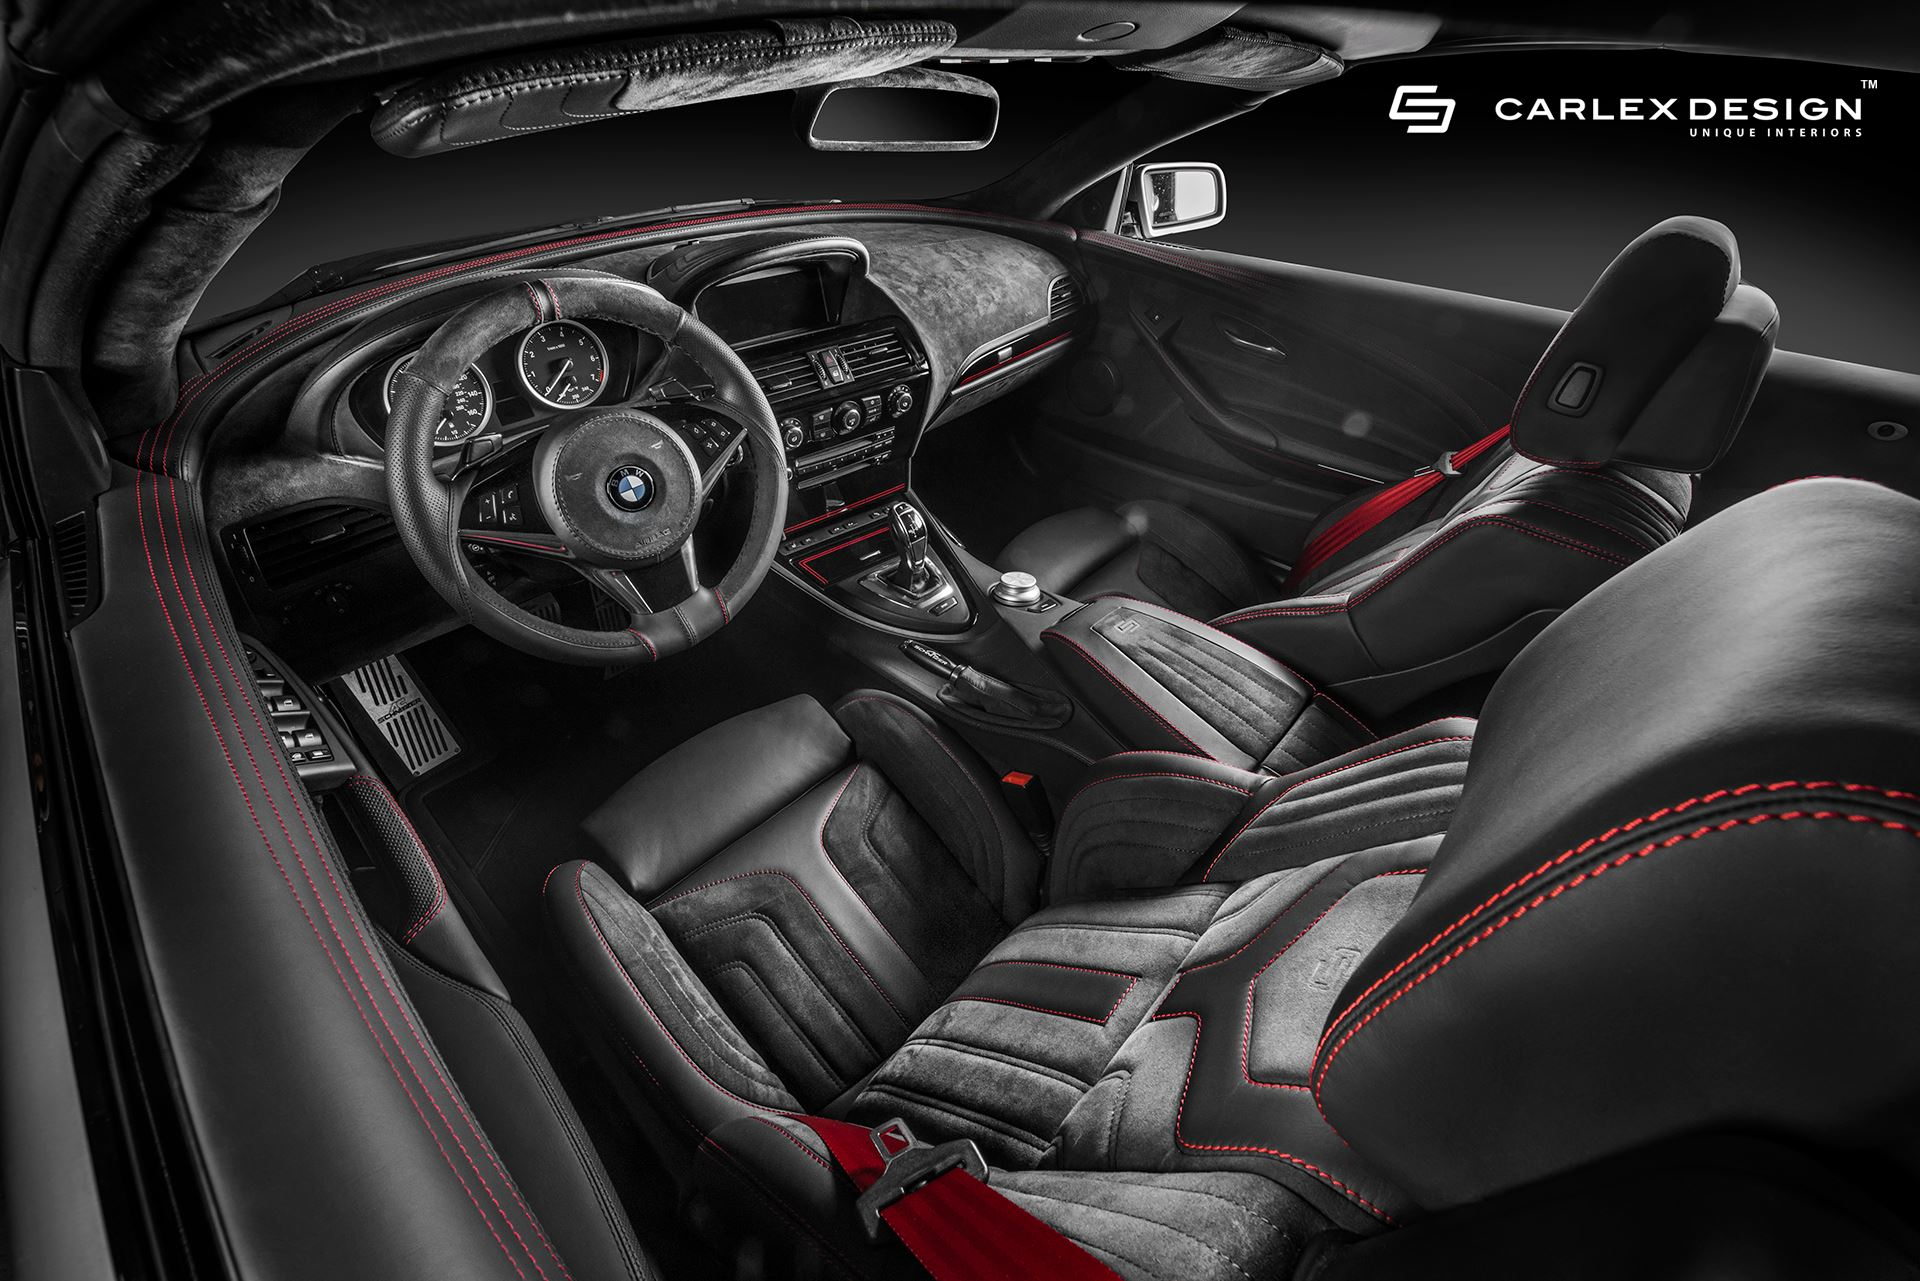 BMW_6-Series_Carlex_Design_0000